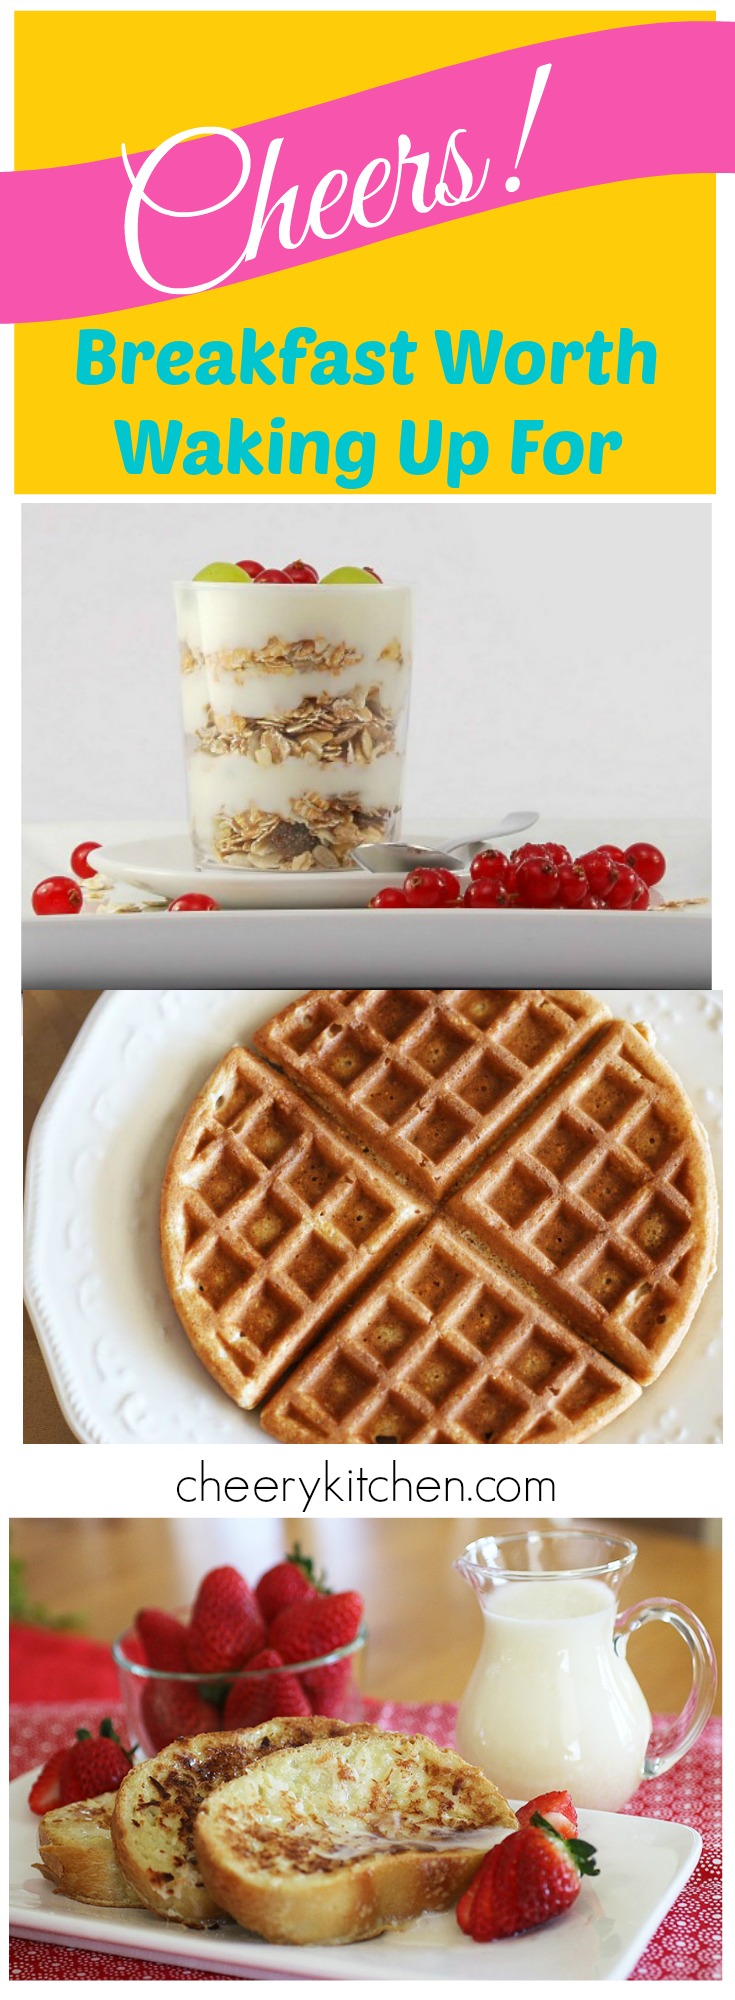 Do you need some motivation in the morning to wake up? Here are the best breakfasts from all over the web!